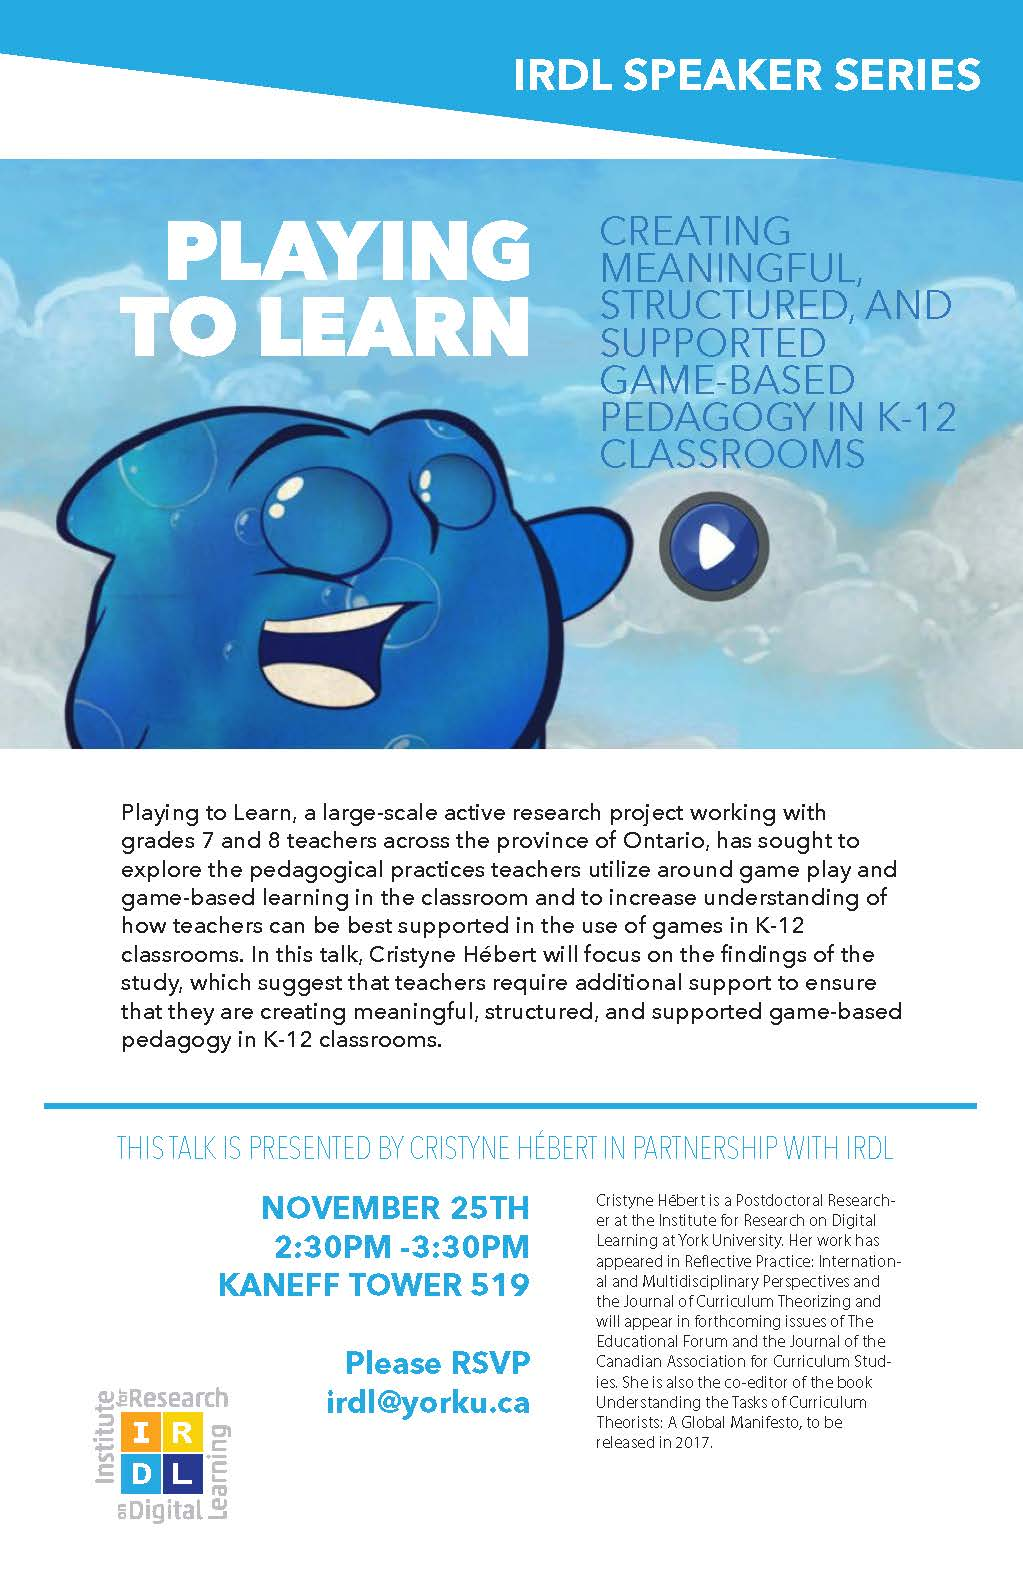 Playing2learn: Creating Meaningful, Structured, and Supported Game-Based Pedagogy in K-12 Classrooms